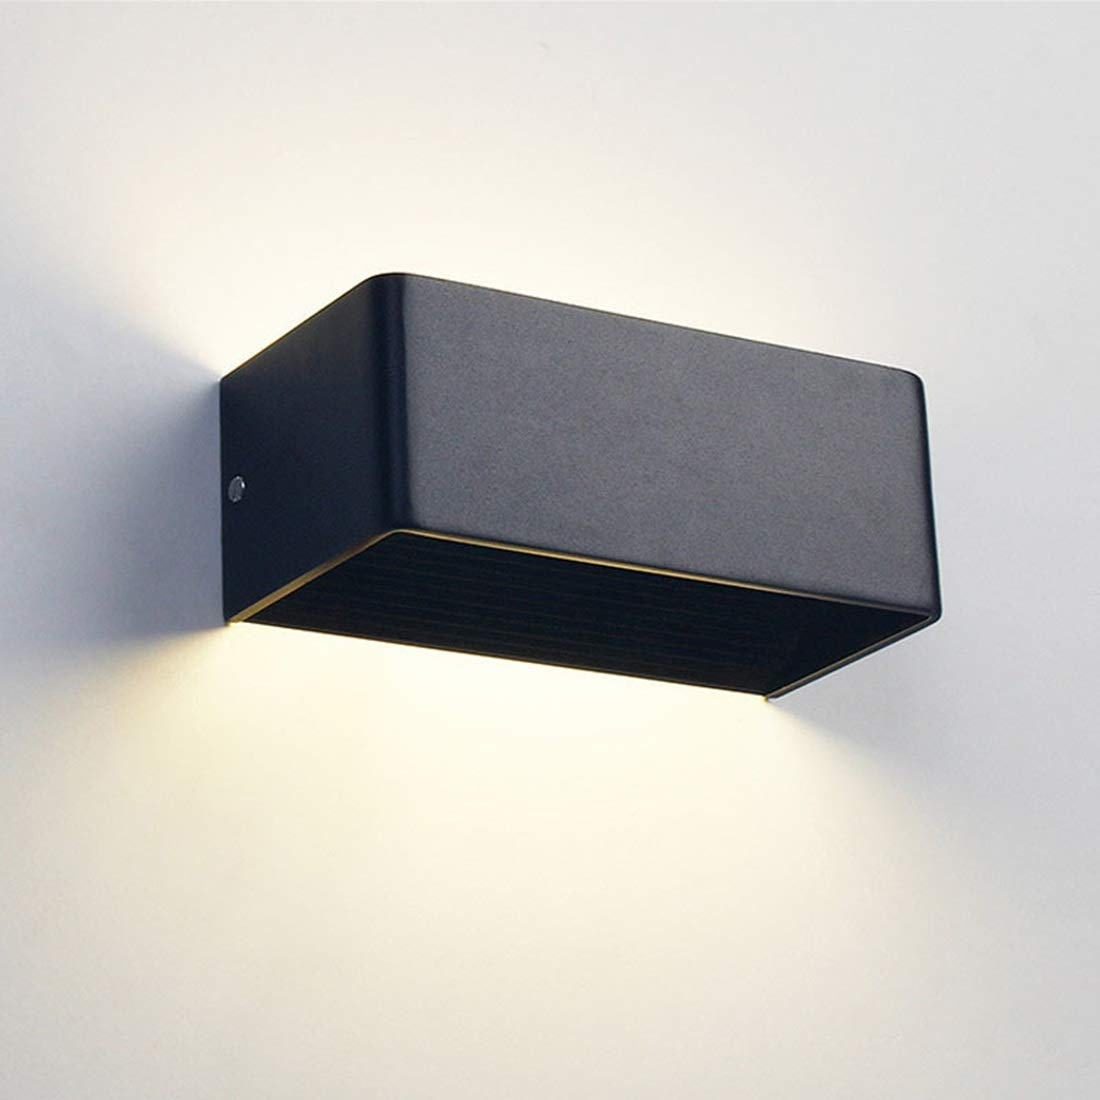 MATCHANT LED Wall Light Up and Down Indoor Lamp Wall Sconce Lights Modern Wall Lights Warm White (Color : Black, Size : L)